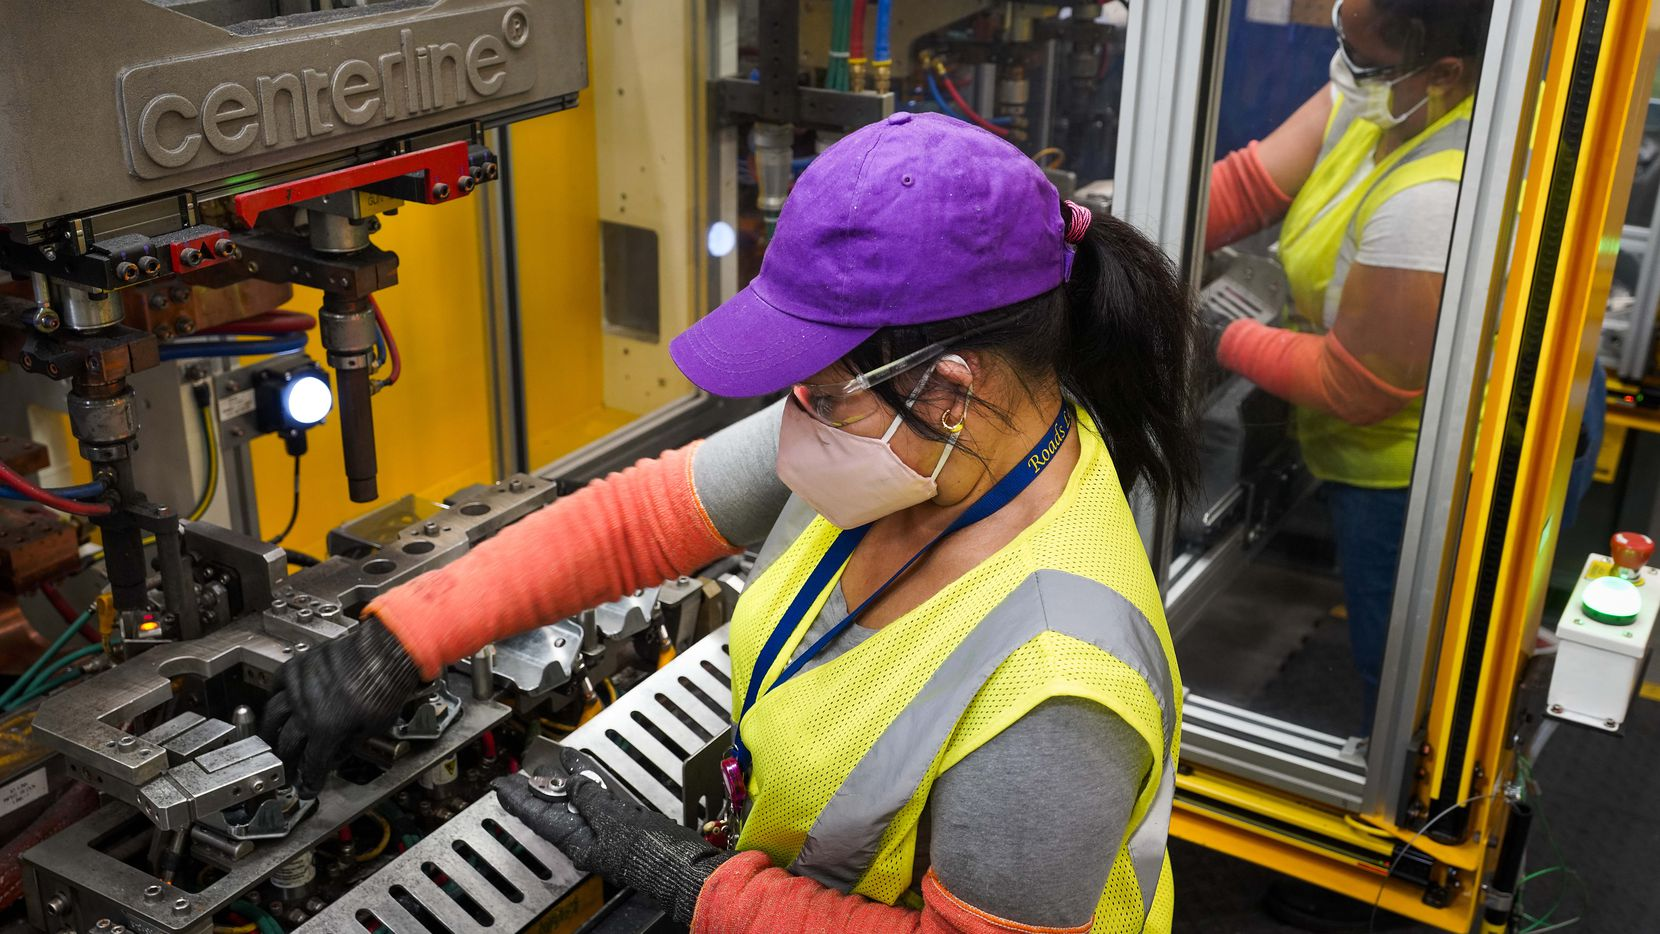 Sonia Benitez (foreground) and Isabel Rosario work a line at Flex-N-Gate in Grand Prairie, a facility that supplies parts for SUVs. Last month, U.S. manufacturers expanded at their fastest pace in 37 years, and Texas factories reported big gains in output, new orders, shipments and more.